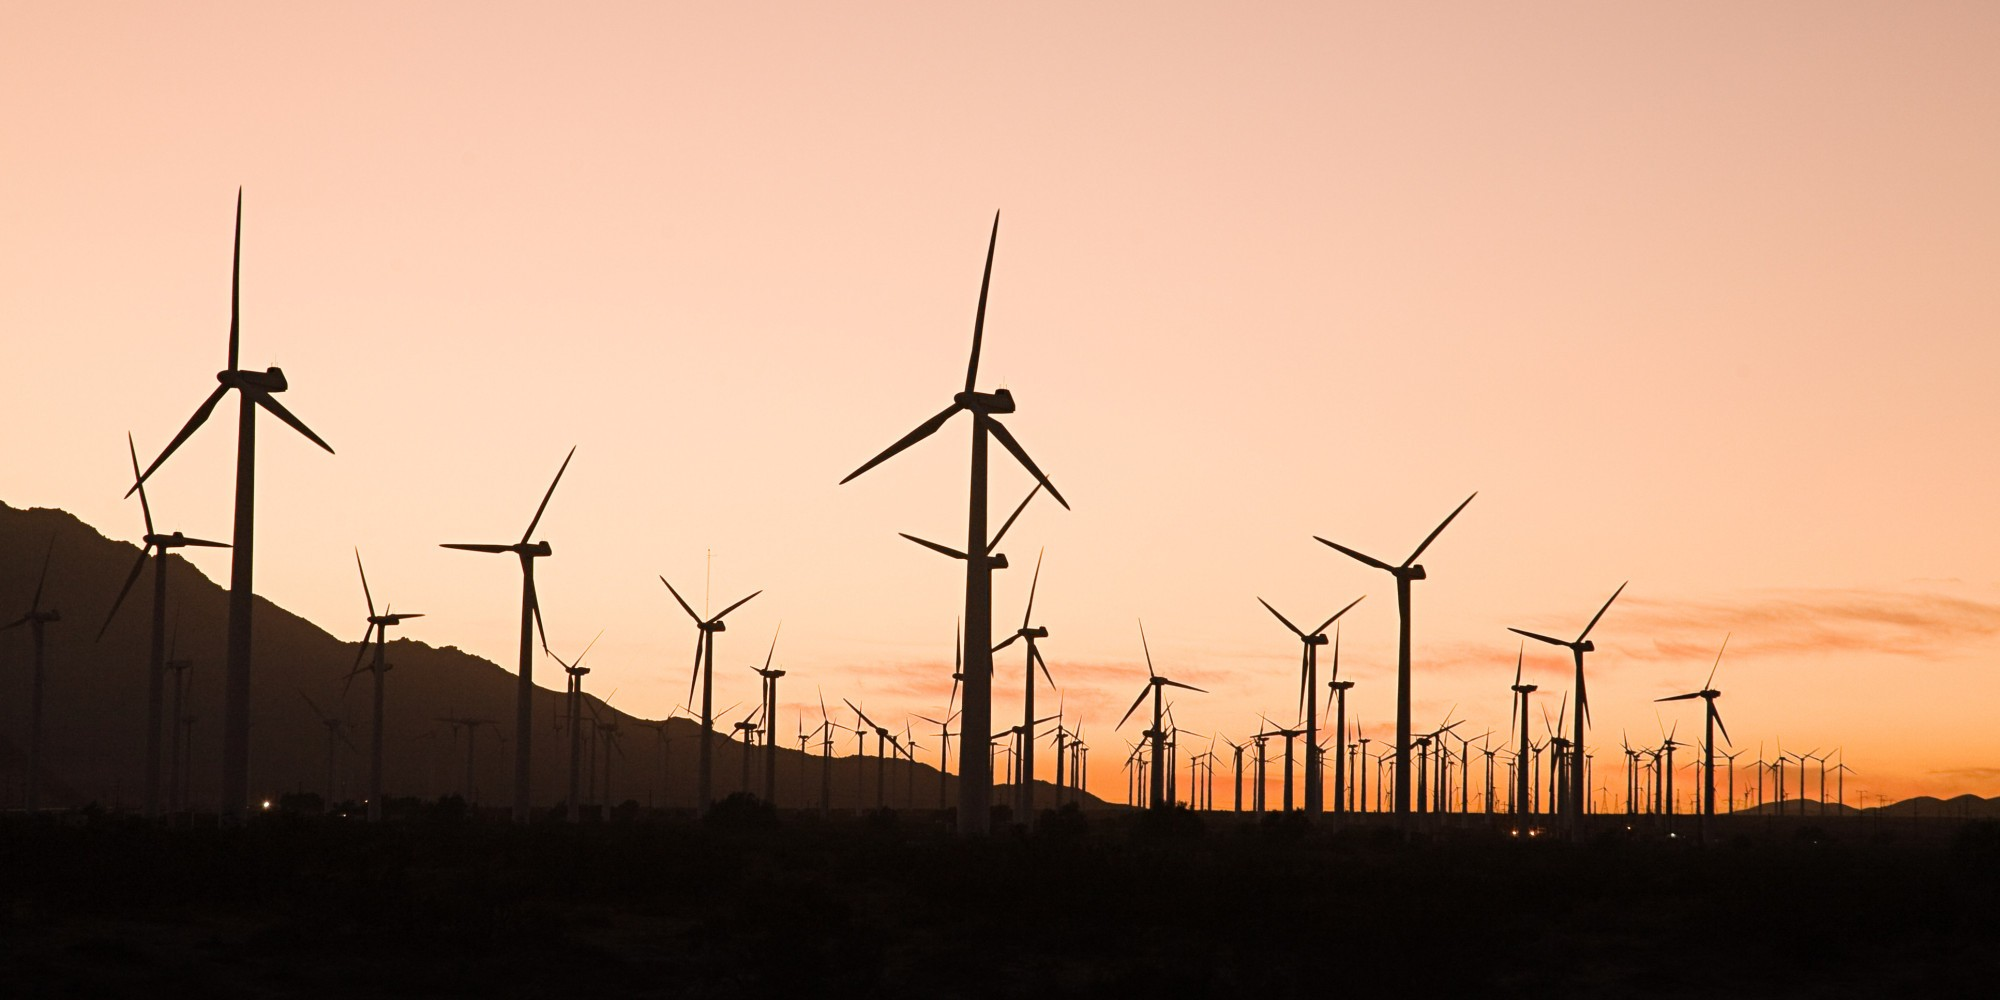 Wind Farms Flourish Across The U.S. As Interest In Renewable Energy Skyrockets